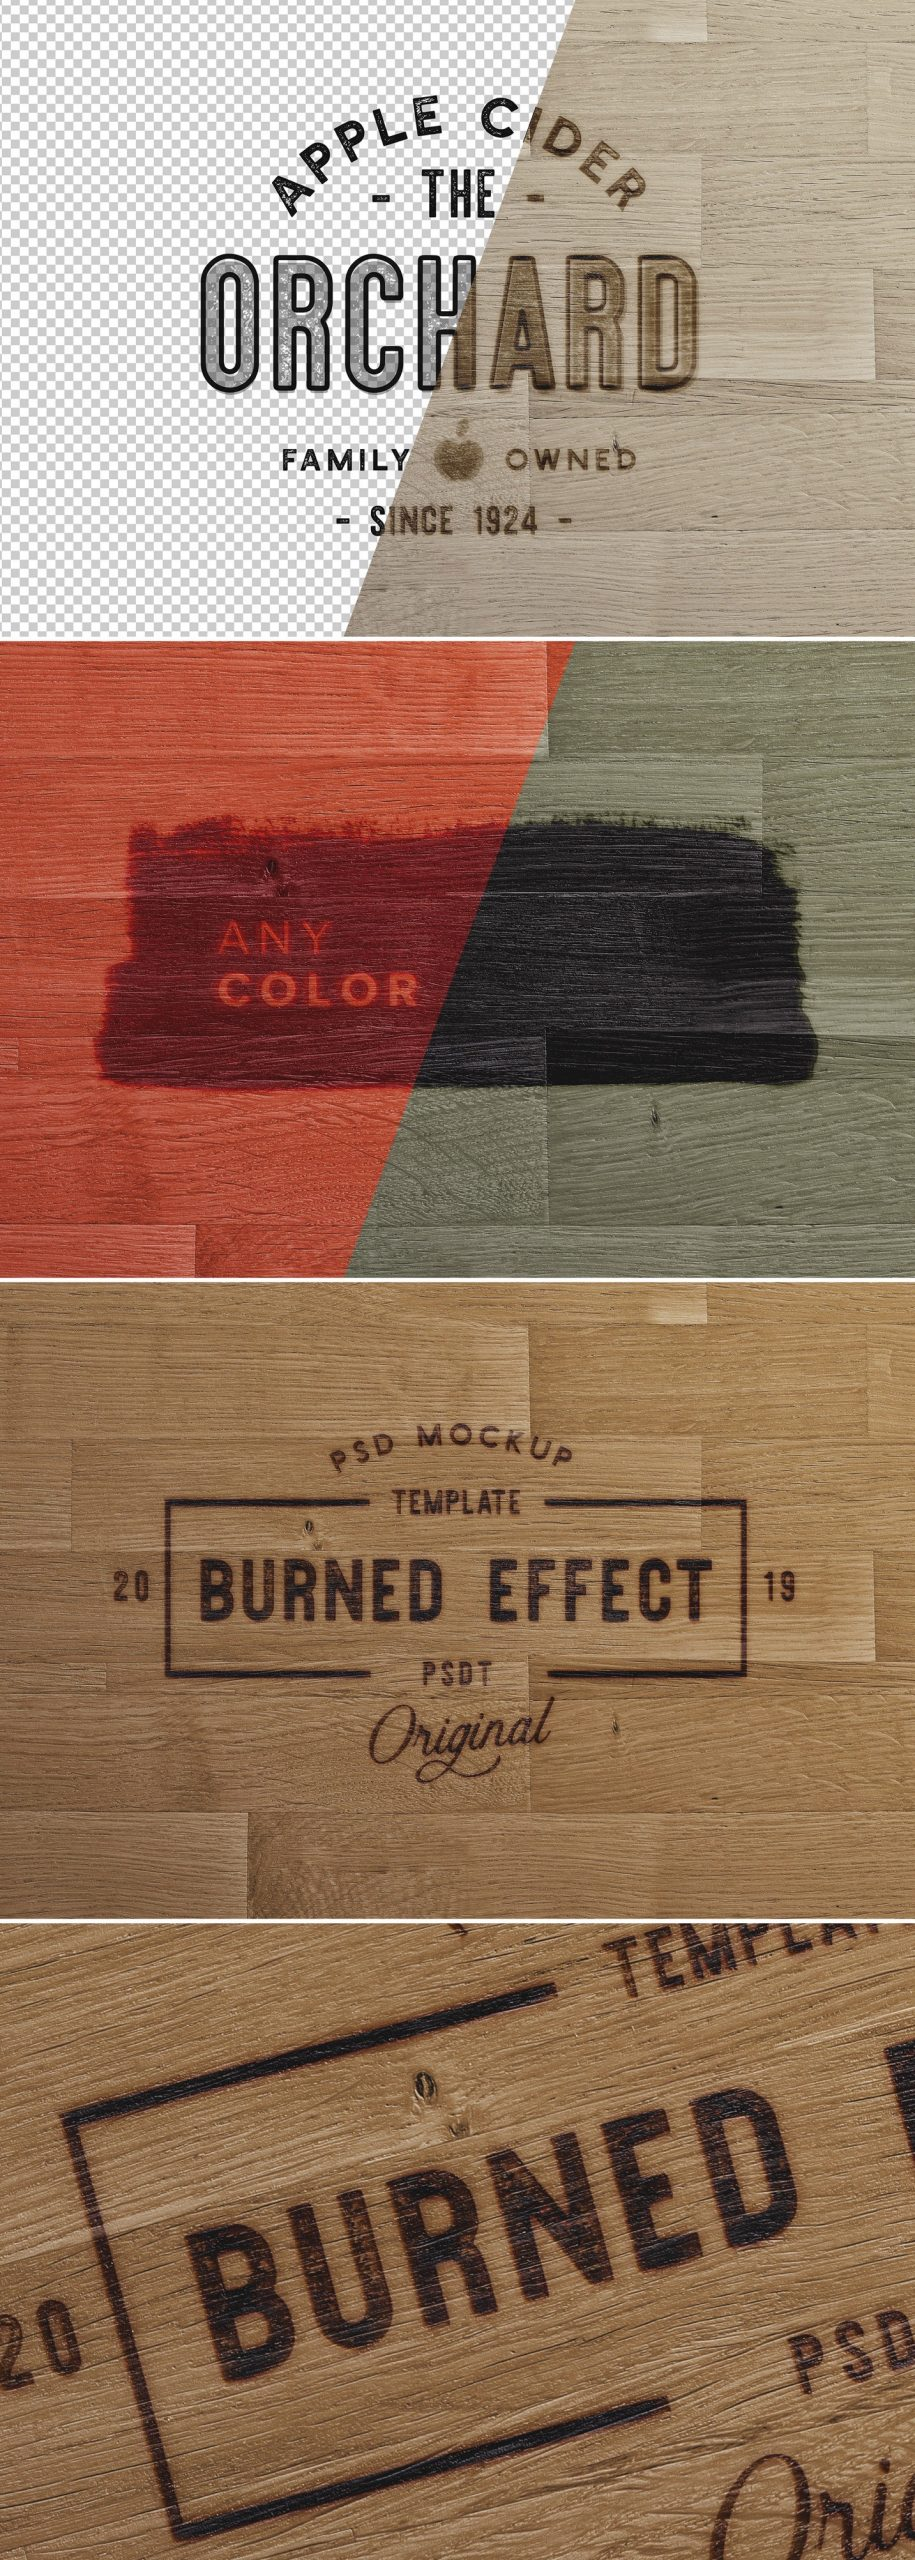 wooden table burn effect mockup preview1 1 scaled